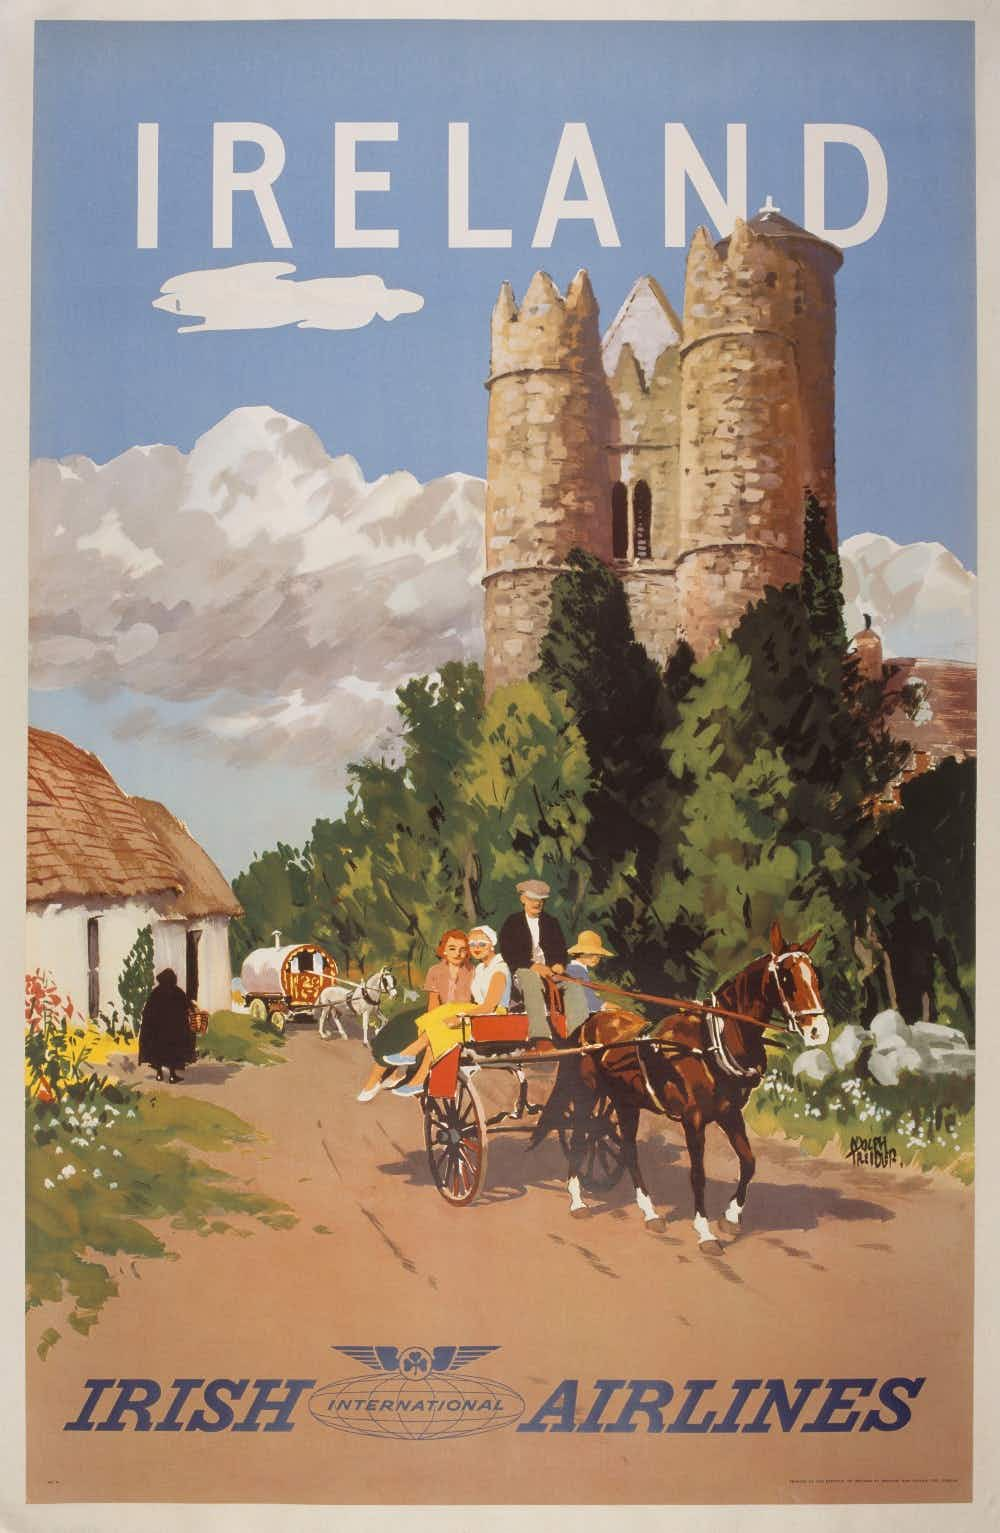 Step back in time with vintage tourism posters depicting romantic Ireland of the 20th century